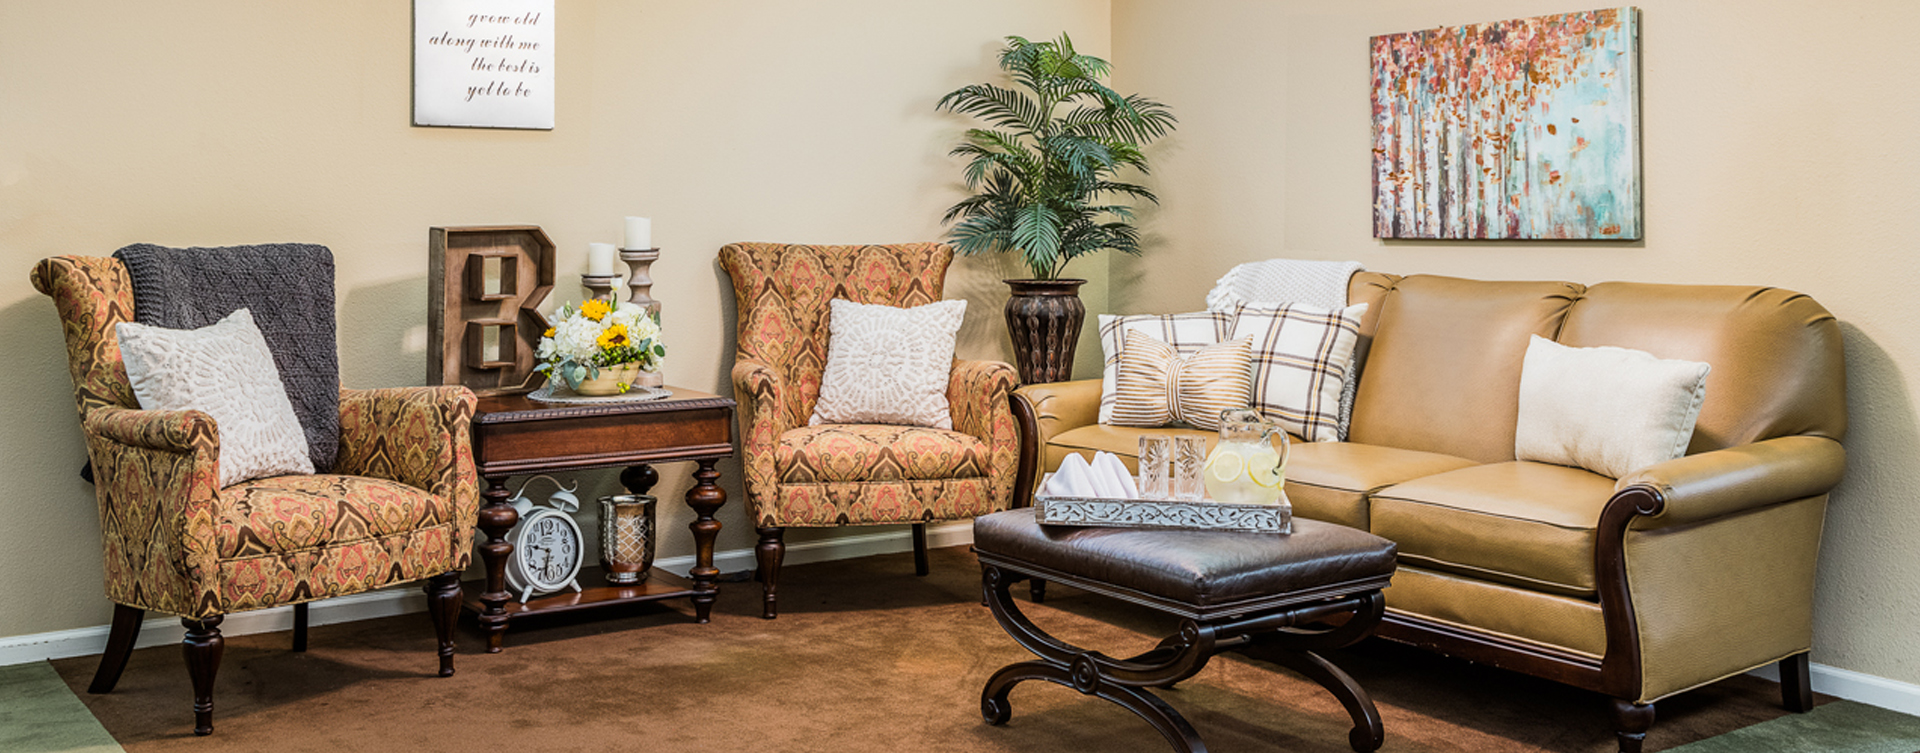 Enjoy a good book in the sitting area at Bickford of Fort Dodge